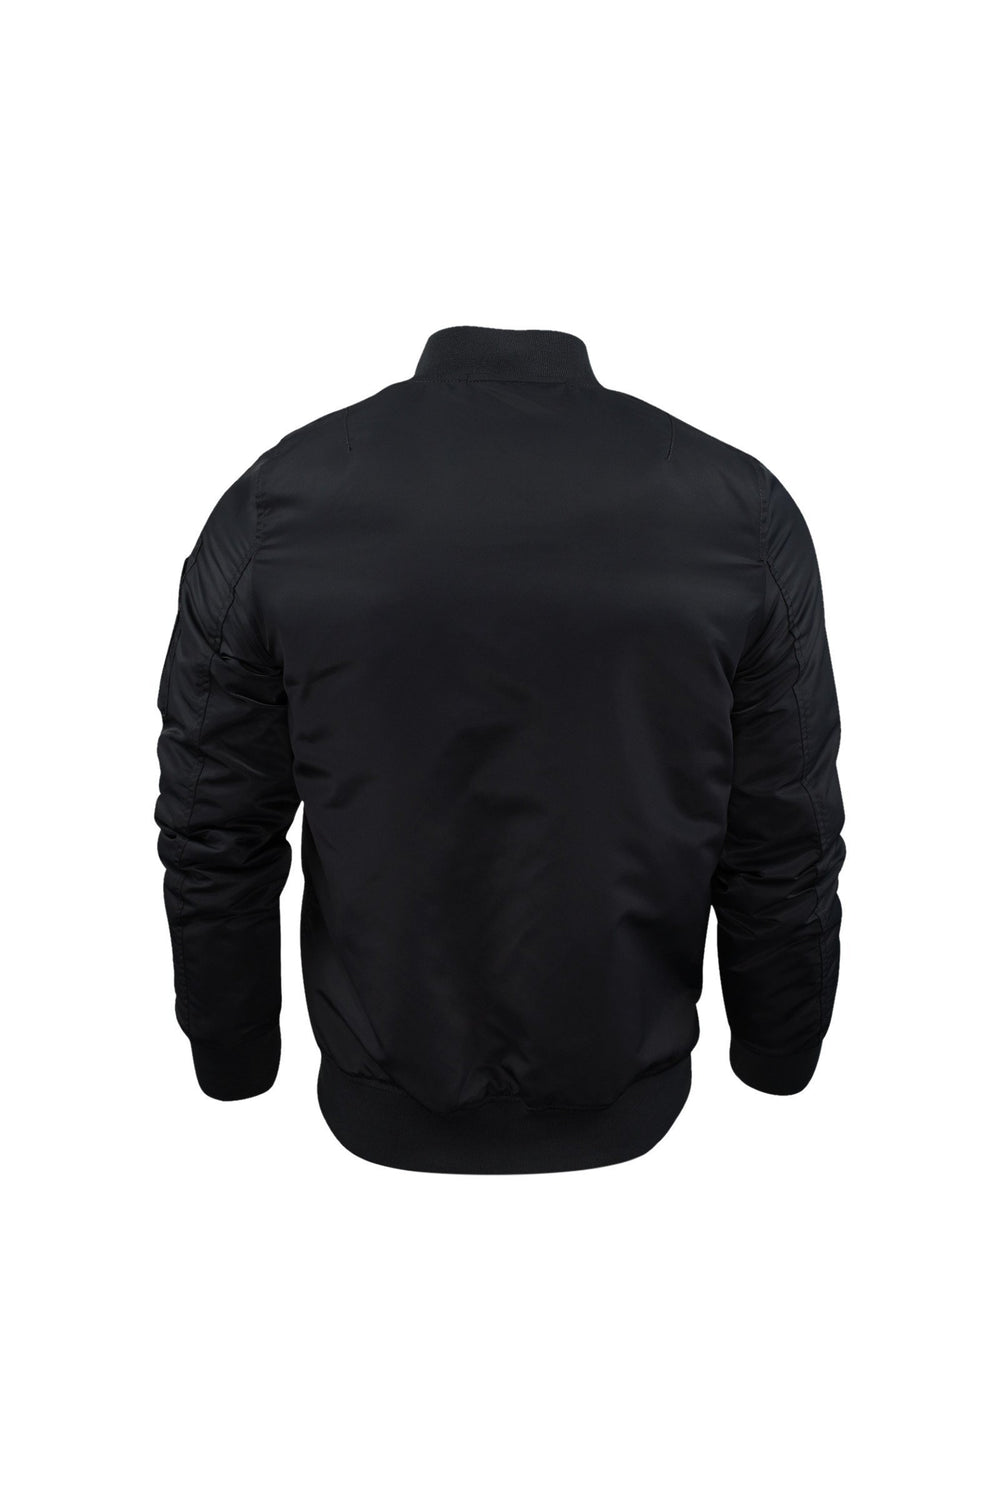 Jackets - Gotham Unpadded Bomber MA1 Jacket Black